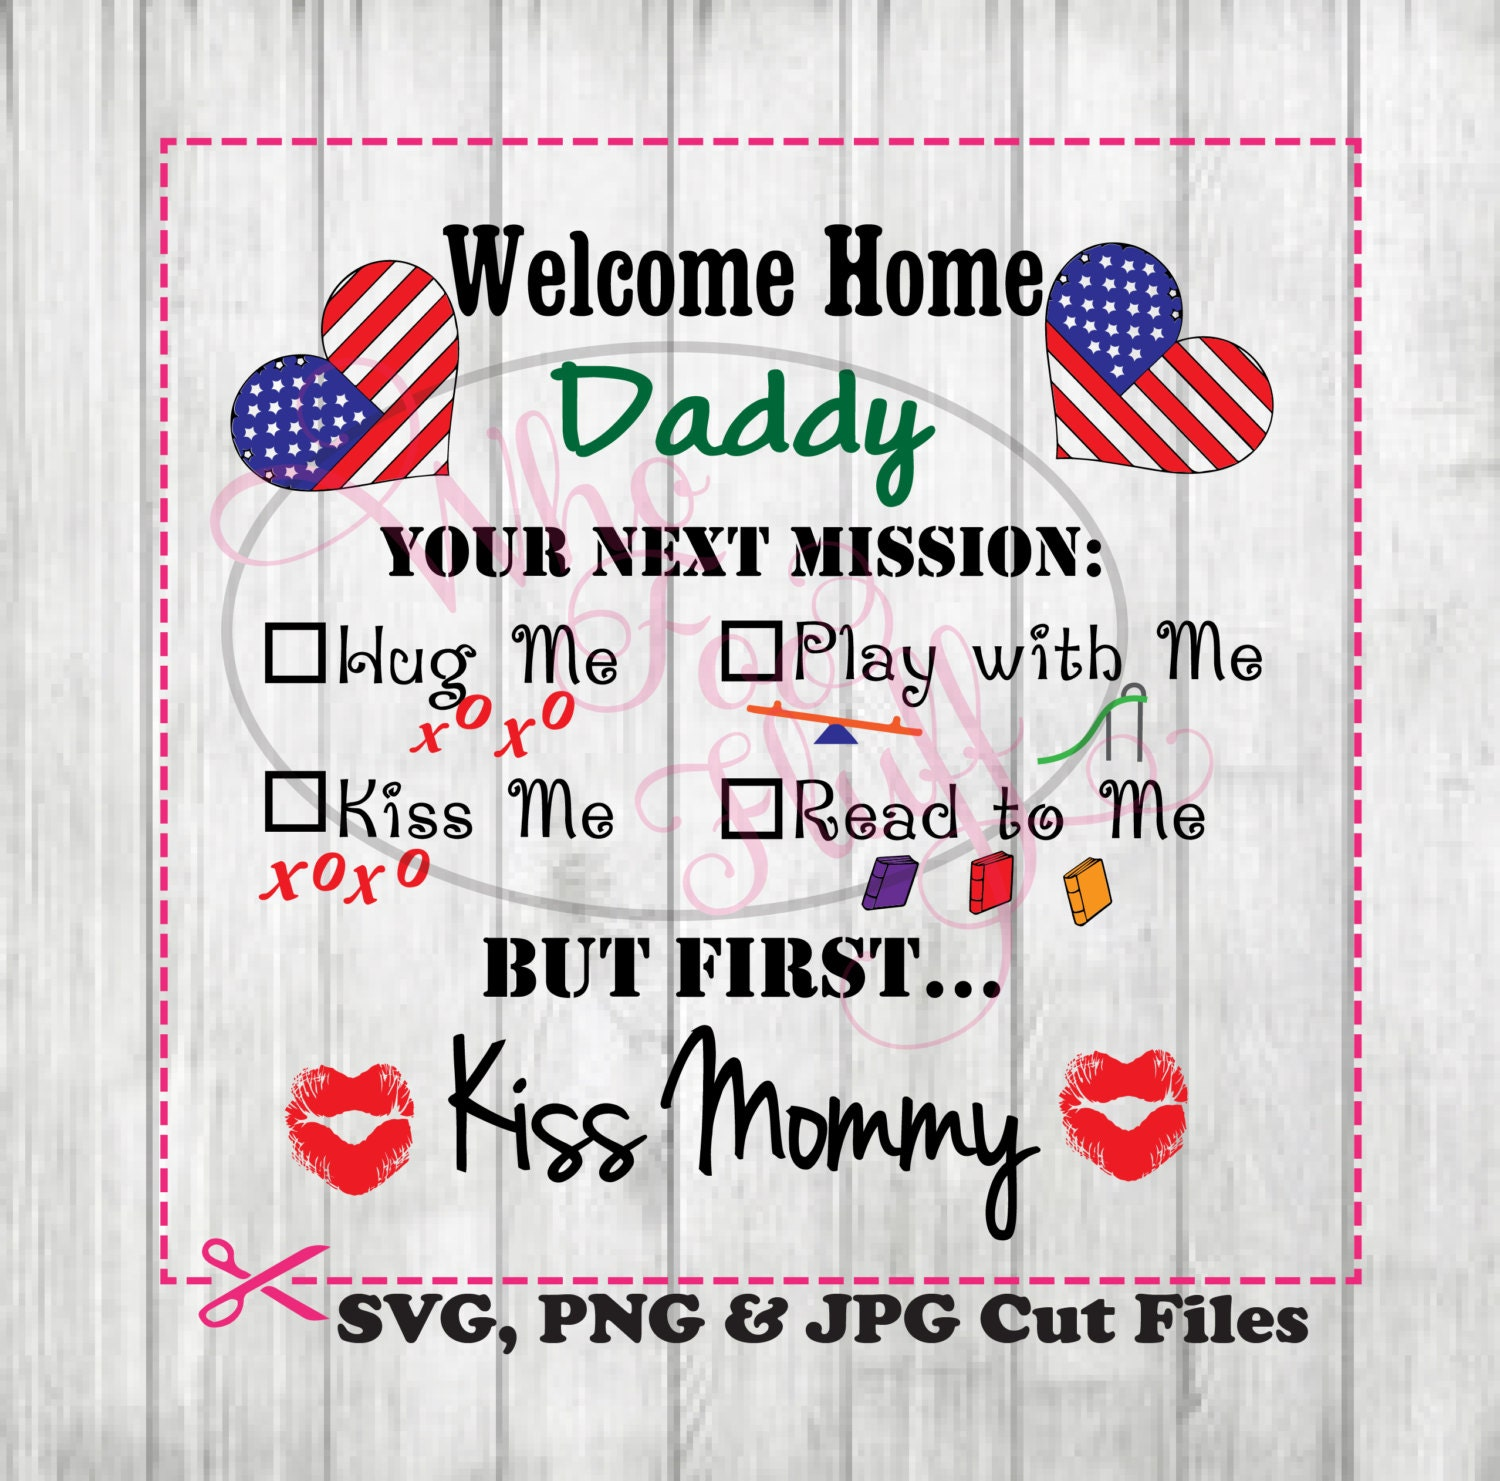 Military Welcome Home Daddy Clipart deployment SVG DIY | Etsy